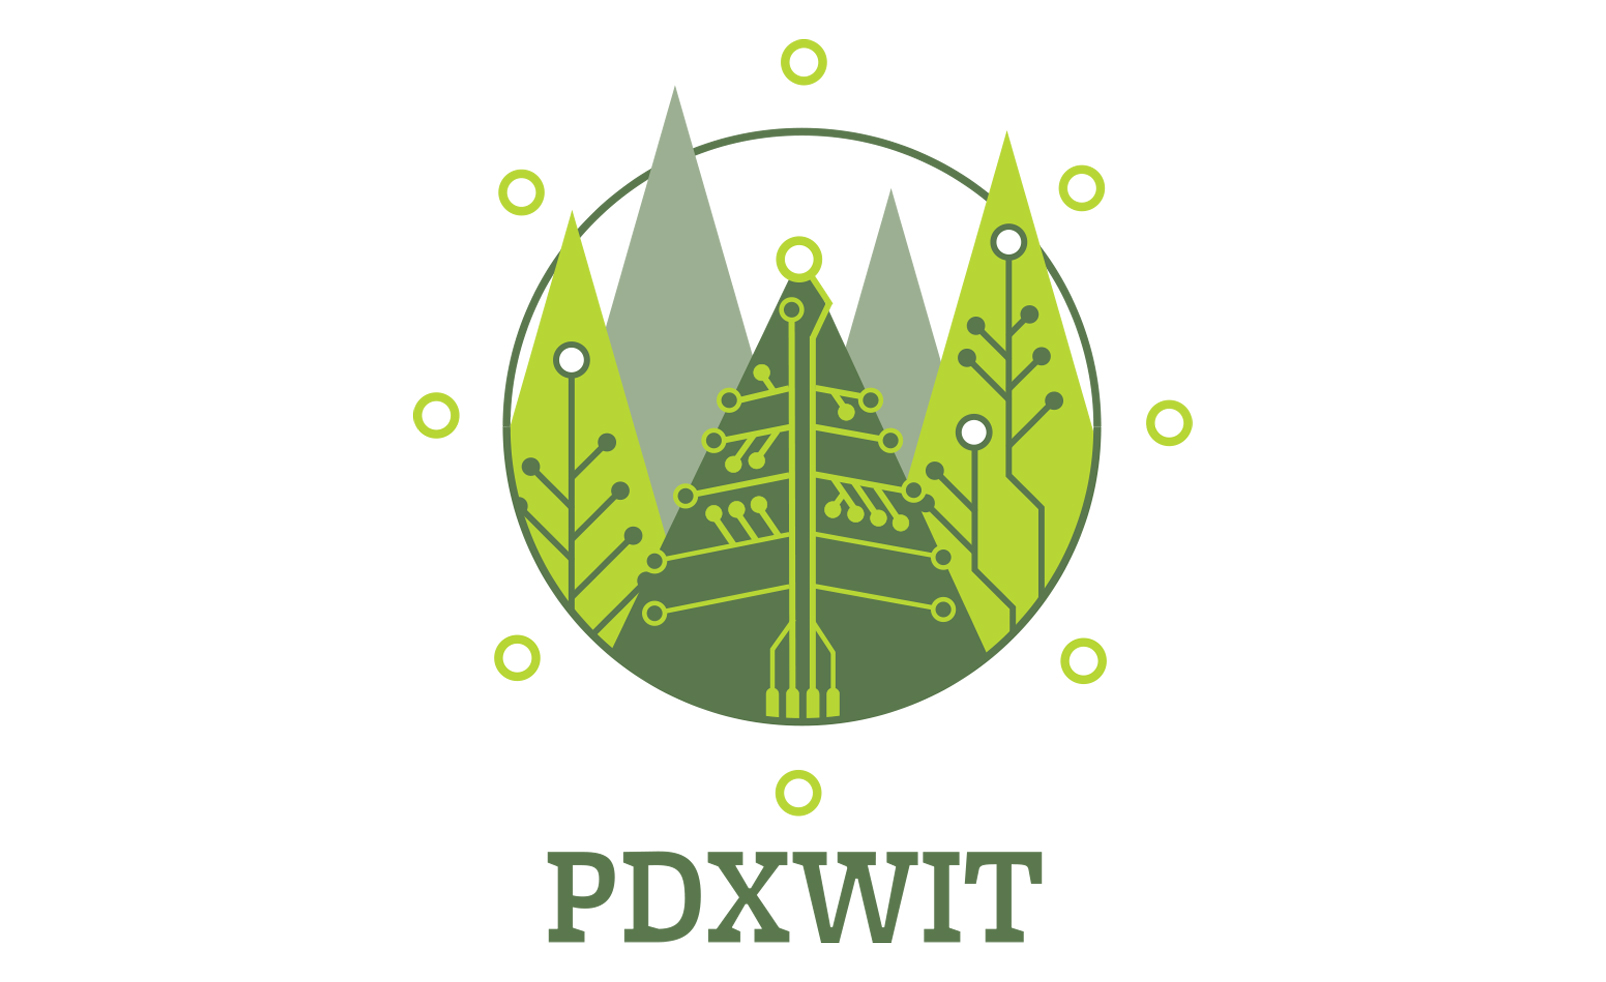 PDXWIT-ADS-ToteGraphic-sm.jpg